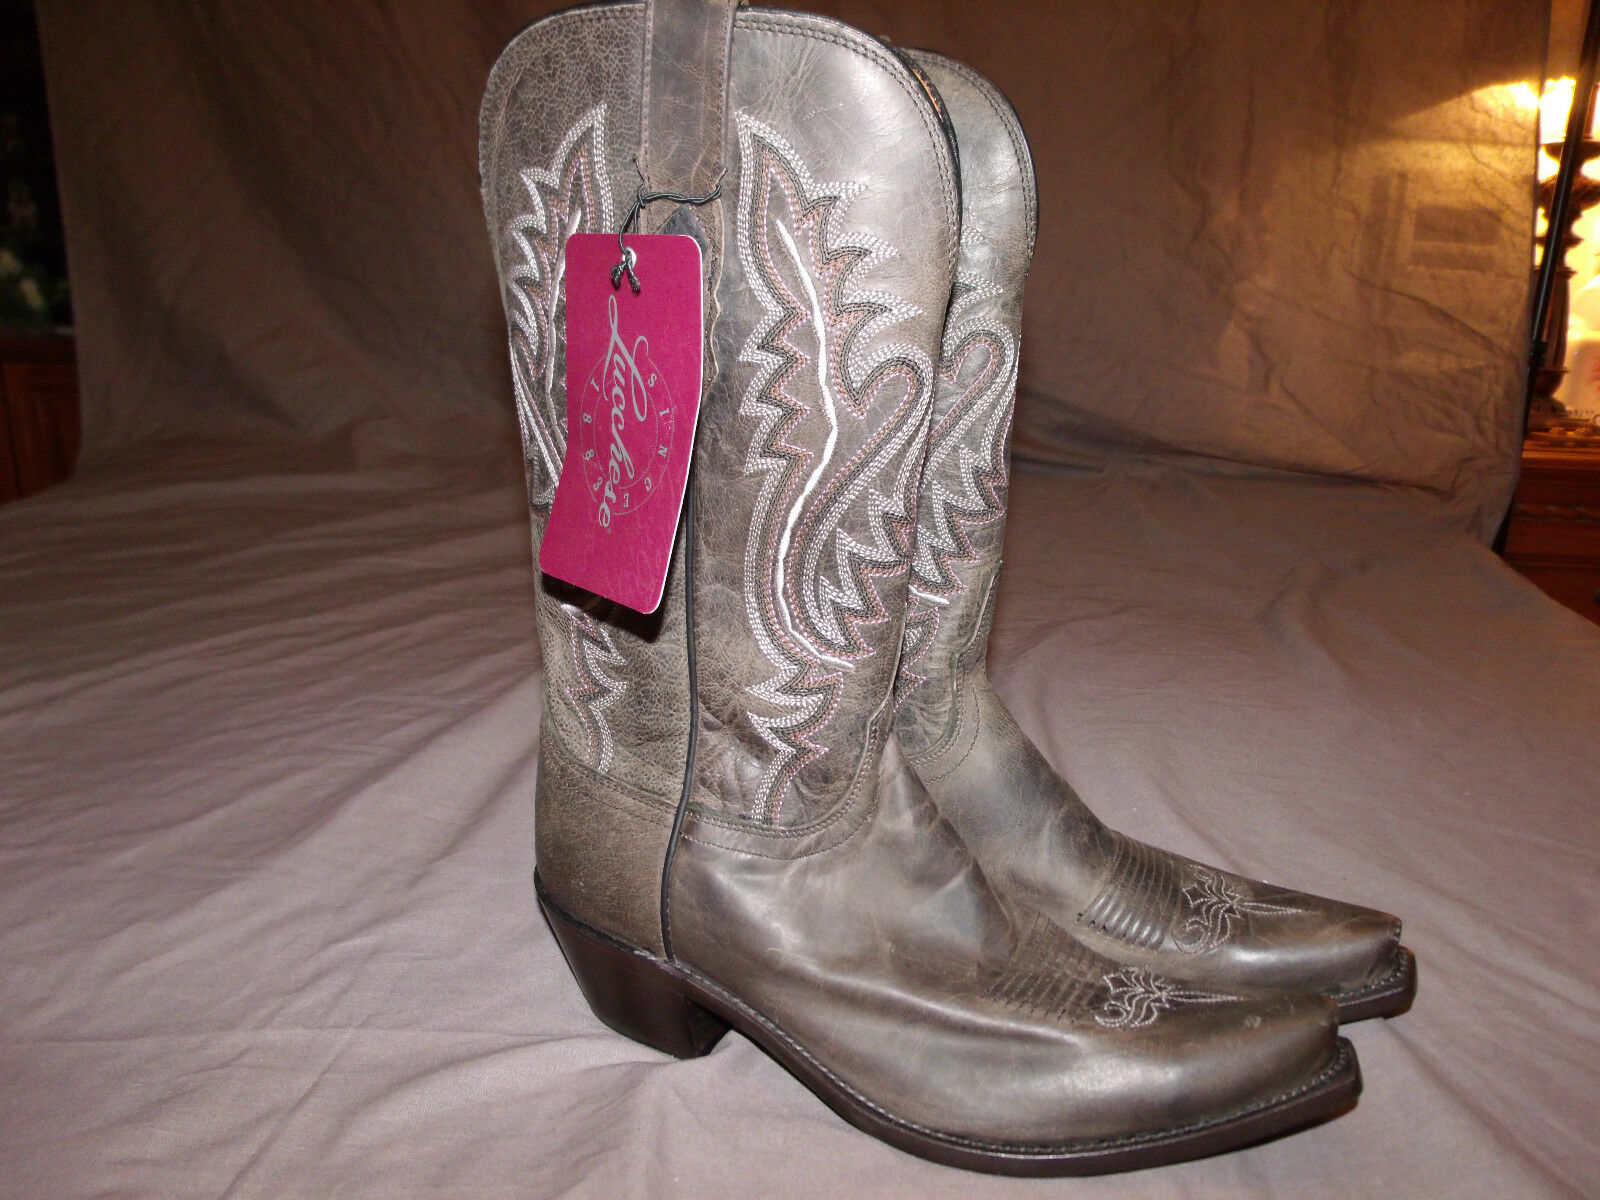 Lucchese 1883 M5001.S54 Anthracite Madras chèvre tout cuir Cowgirl bottes sz 9.0B